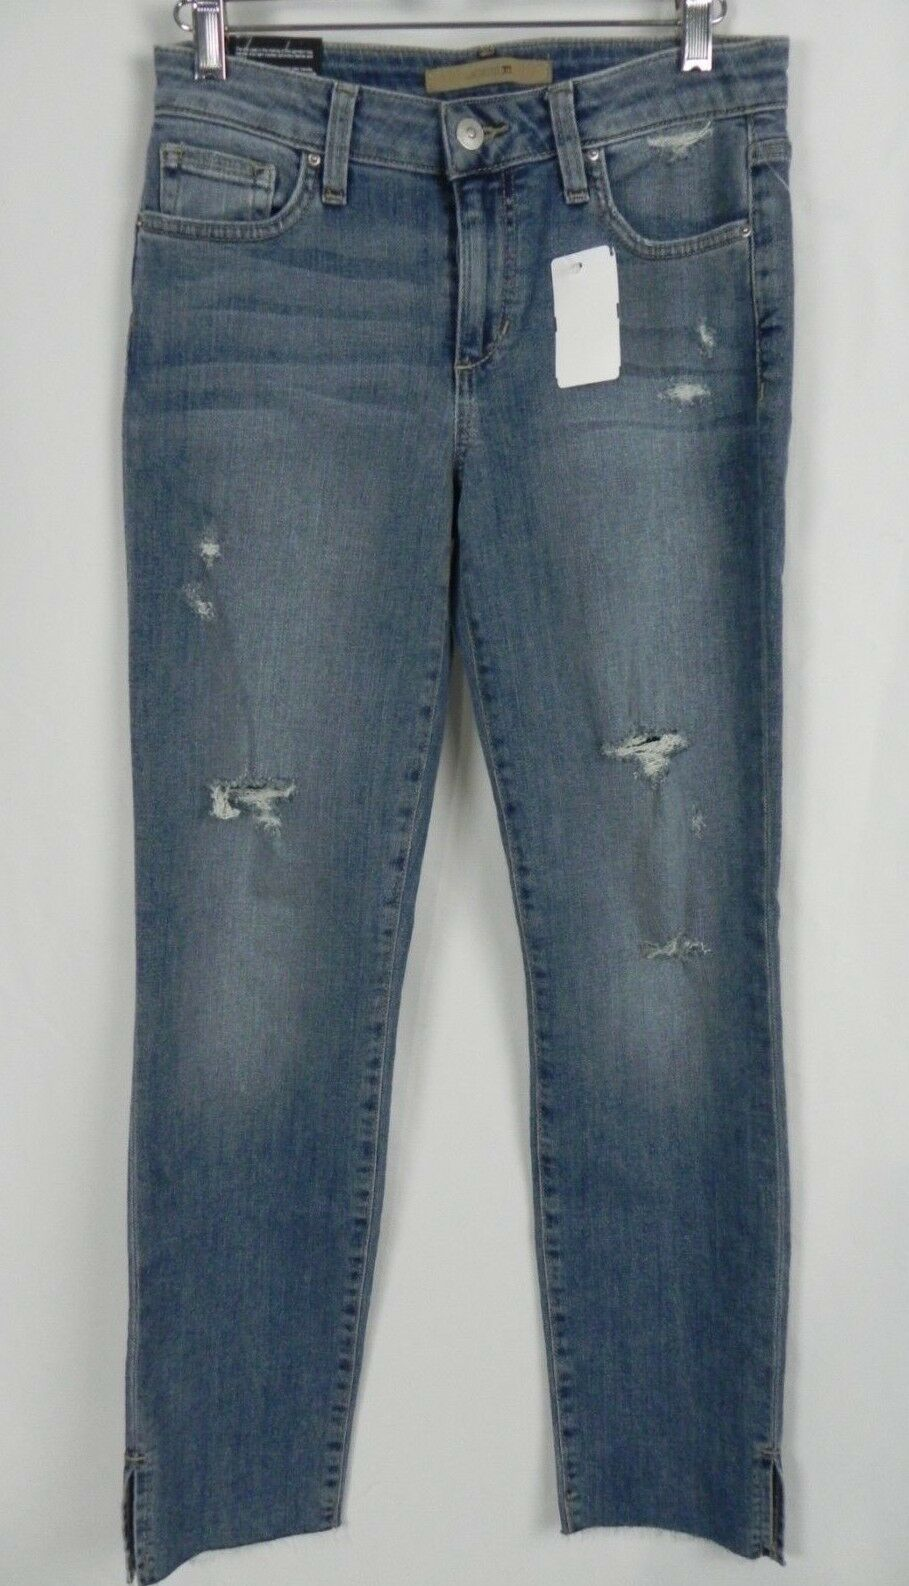 NEW Joe's Straight Ankle Medium Wash The Charlie Kandie Jeans Size 25  (O1-14)